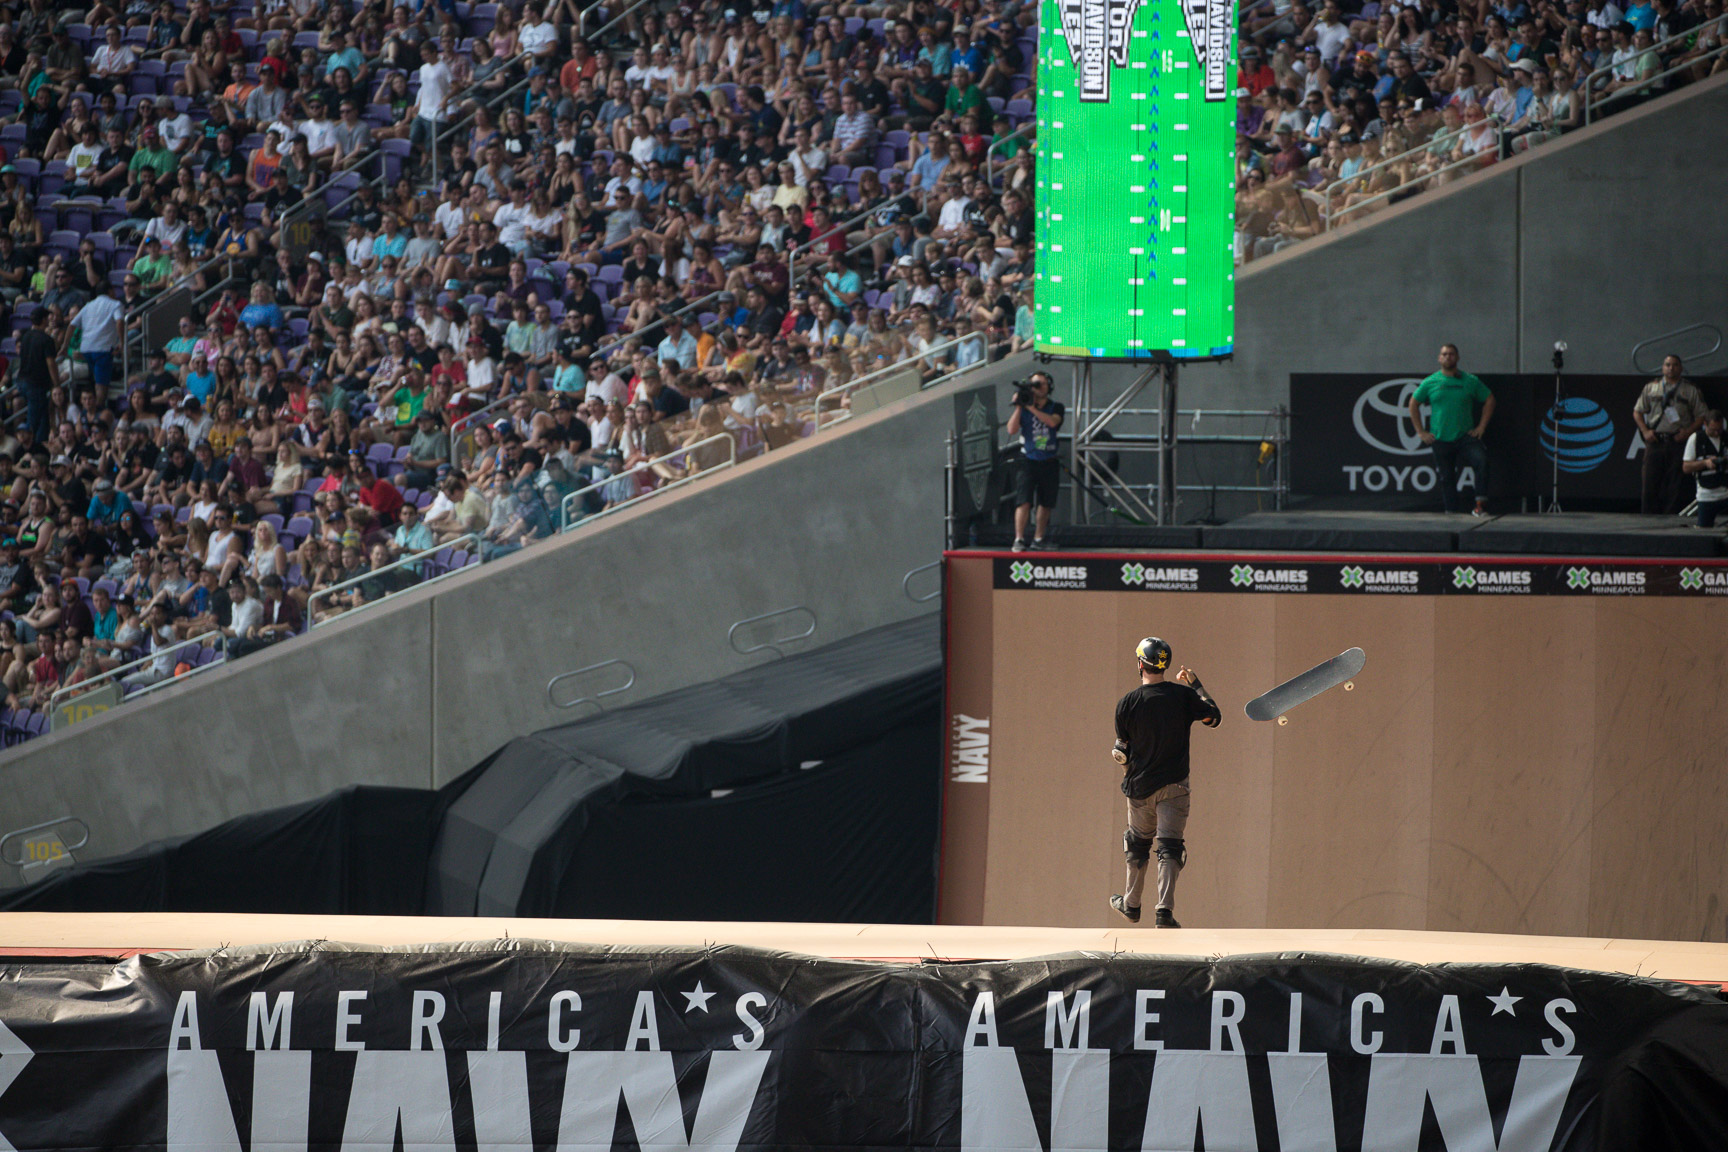 Elliot Sloan is no stranger to Big Air, but his all-or-nothing approach to skating Big Air doesn't always land him in the top position. That all changed at X Games Minneapolis, when Sloan landed a dream run: A 720 Indy grab over the jump to a 900 Indy grab on the quarterpipe. The run placed him into gold-medal position for the remainder of the competition.